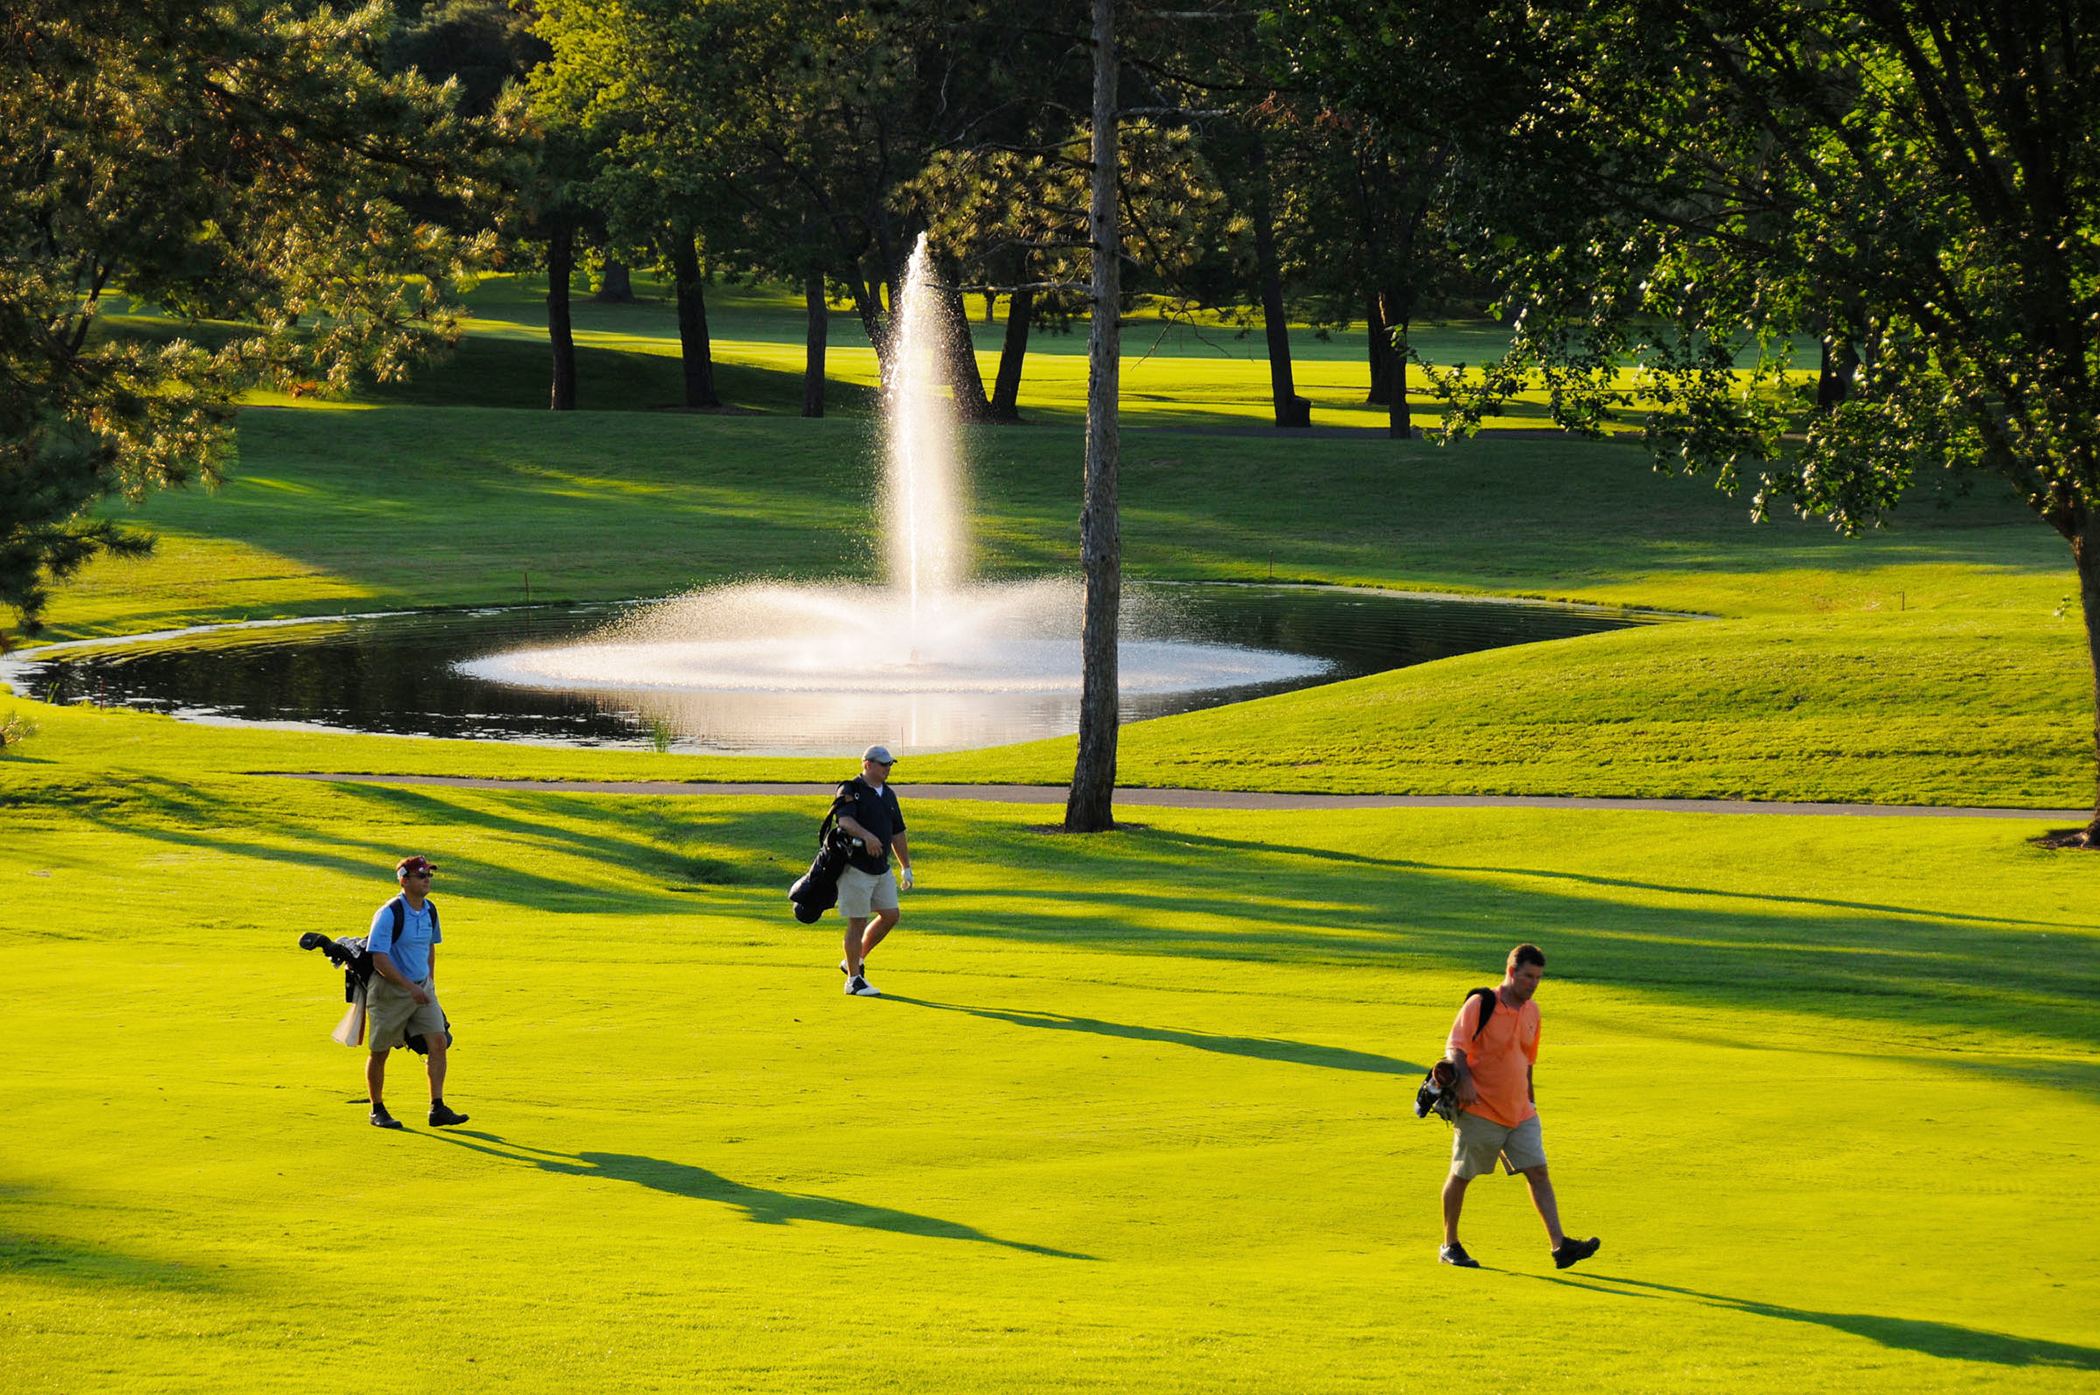 <strong>West Hartford, Connecticut. </strong>With two public golf courses, a skating rink, multiple pools, and America's oldest public rose garden, there's something for everyone here.